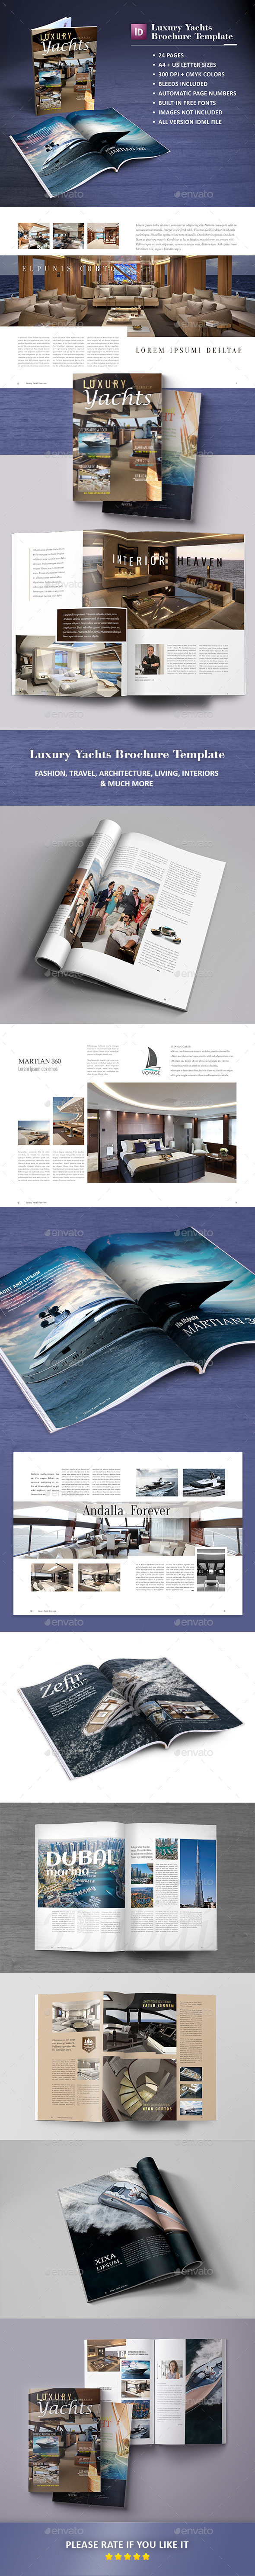 GraphicRiver Luxury Yachts Brochure Template 20368426